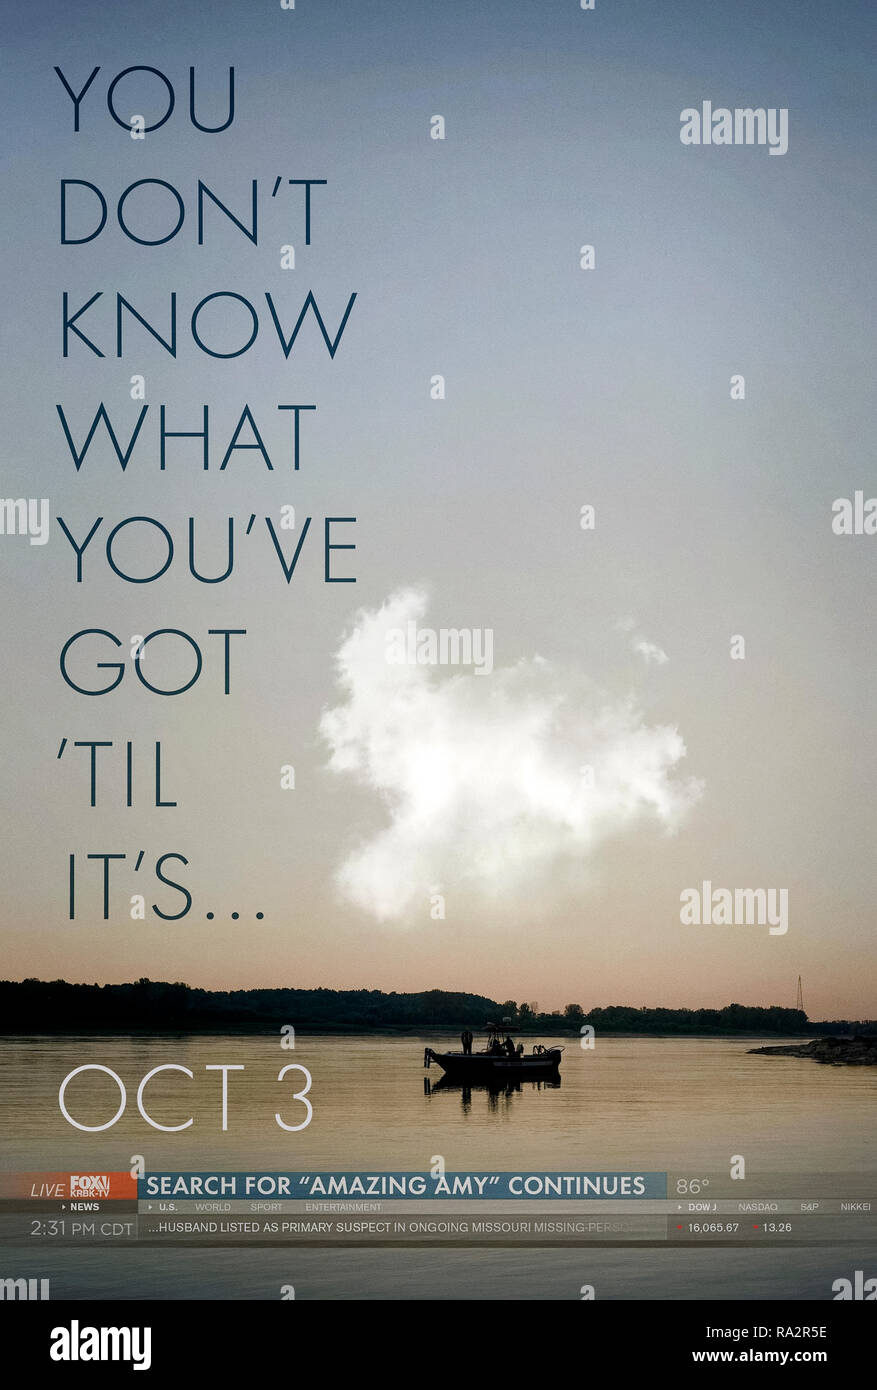 "Gone Girl (2014) directed by David Fincher and starring Ben Affleck, Rosamund Pike, Neil Patrick Harris and Tyler Perry. ""You don't know what you've got 'til it's…"" teaser poster. Film version of Gillian Flynn's bestselling novel about a missing wife and a suspicious husband. - Stock Image"